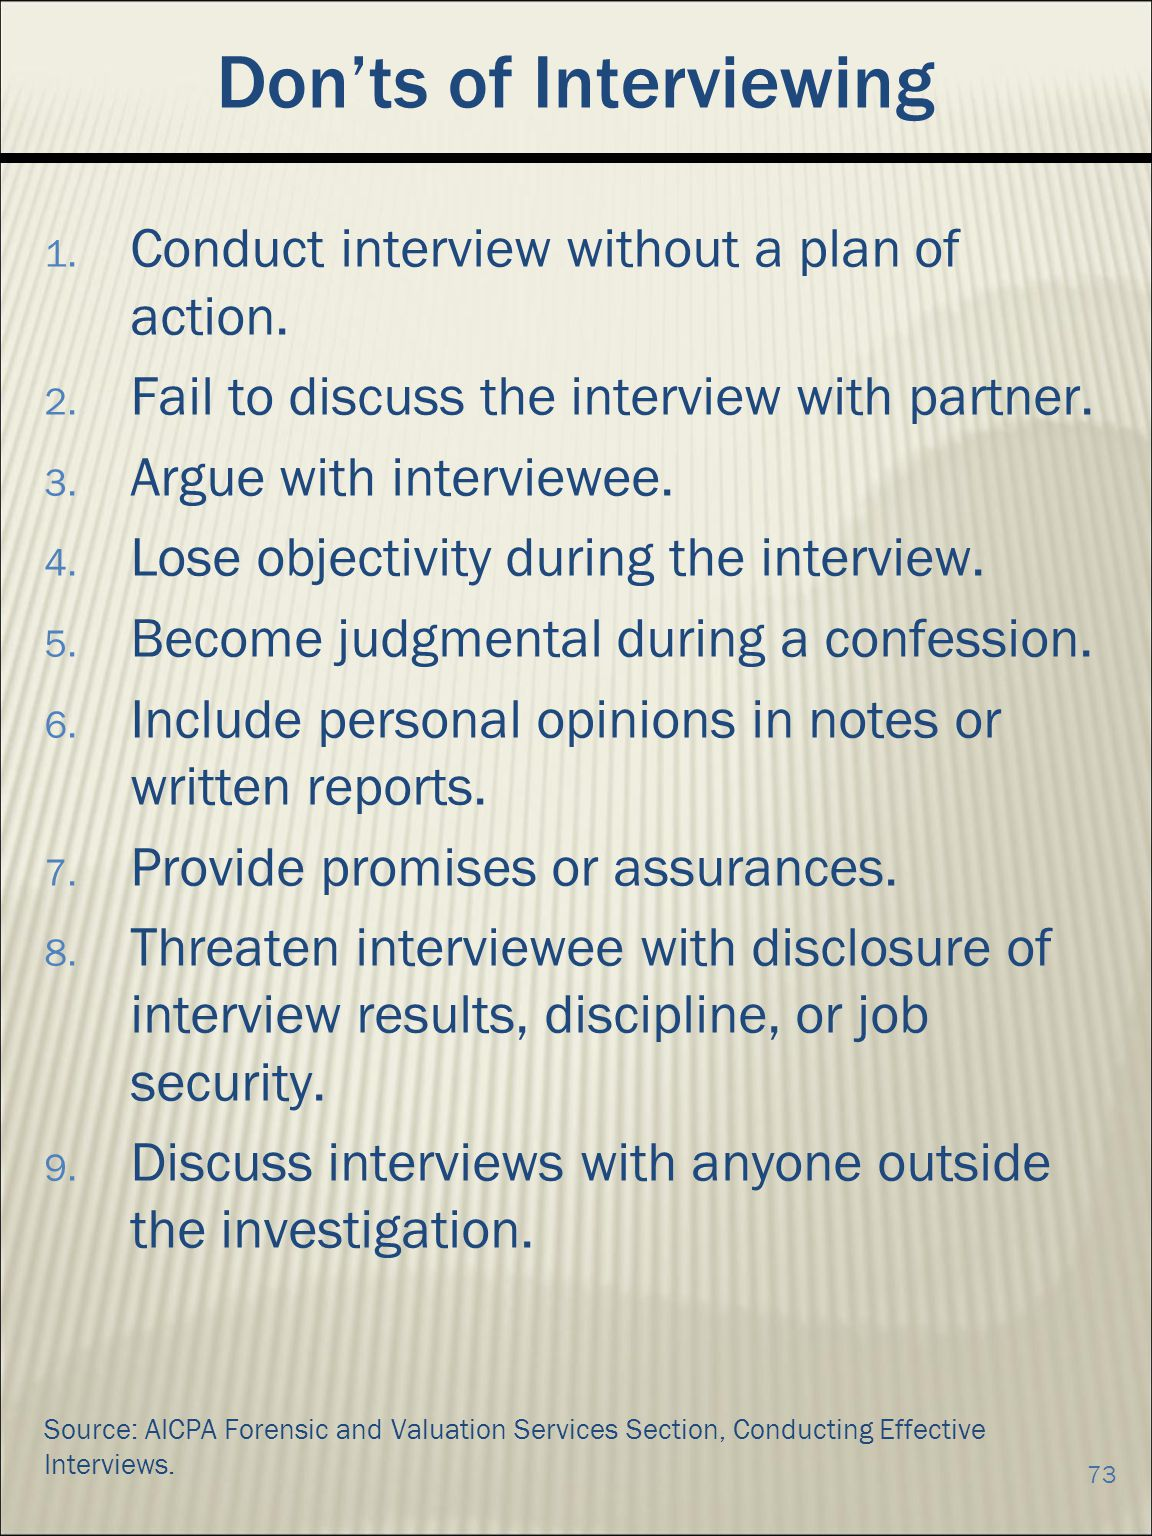 Donts of Interviewing 1.Conduct interview without a plan of action.